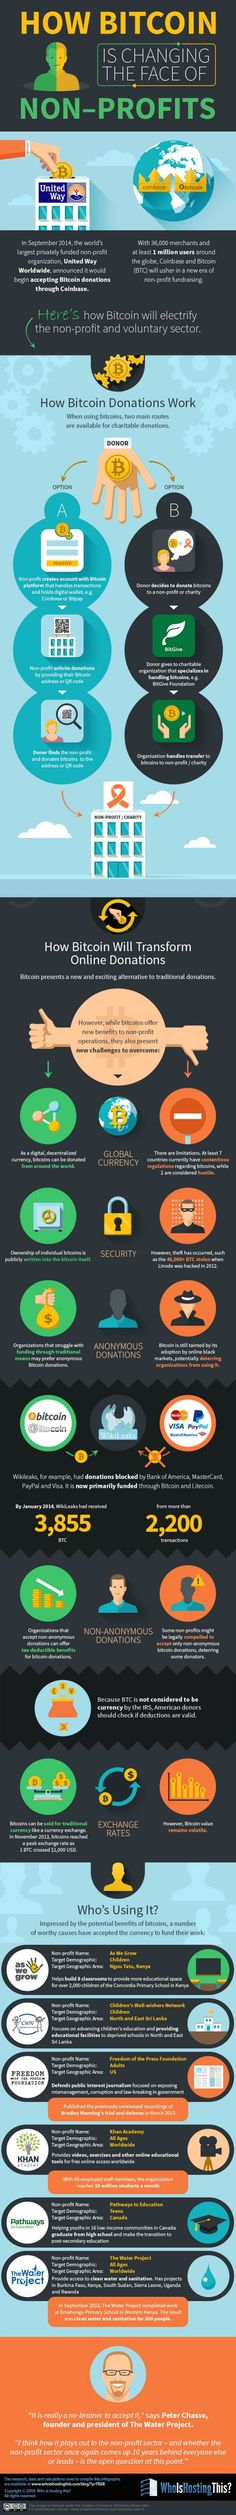 How Bitcoin is Changing the Face of Non-Profits #infographic #Bitcoin #Nonprofits #HowToGetFreeBitcoins